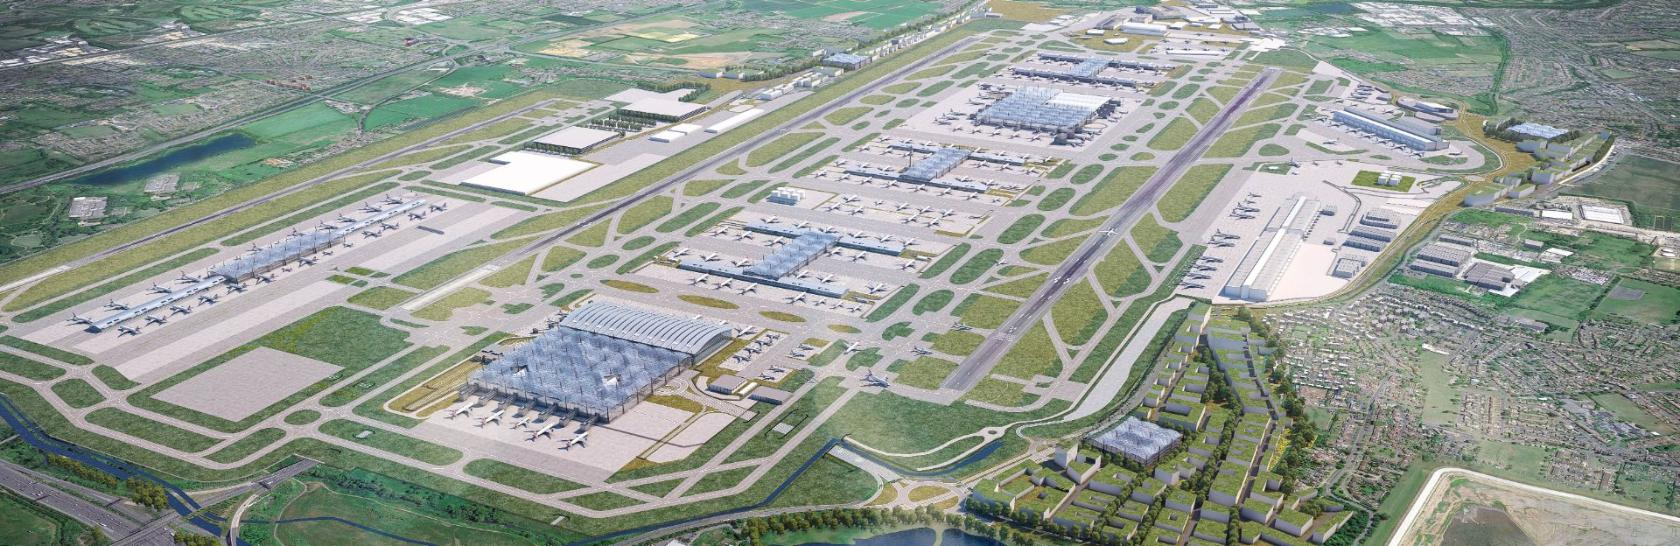 Heathrow: our company, your airport